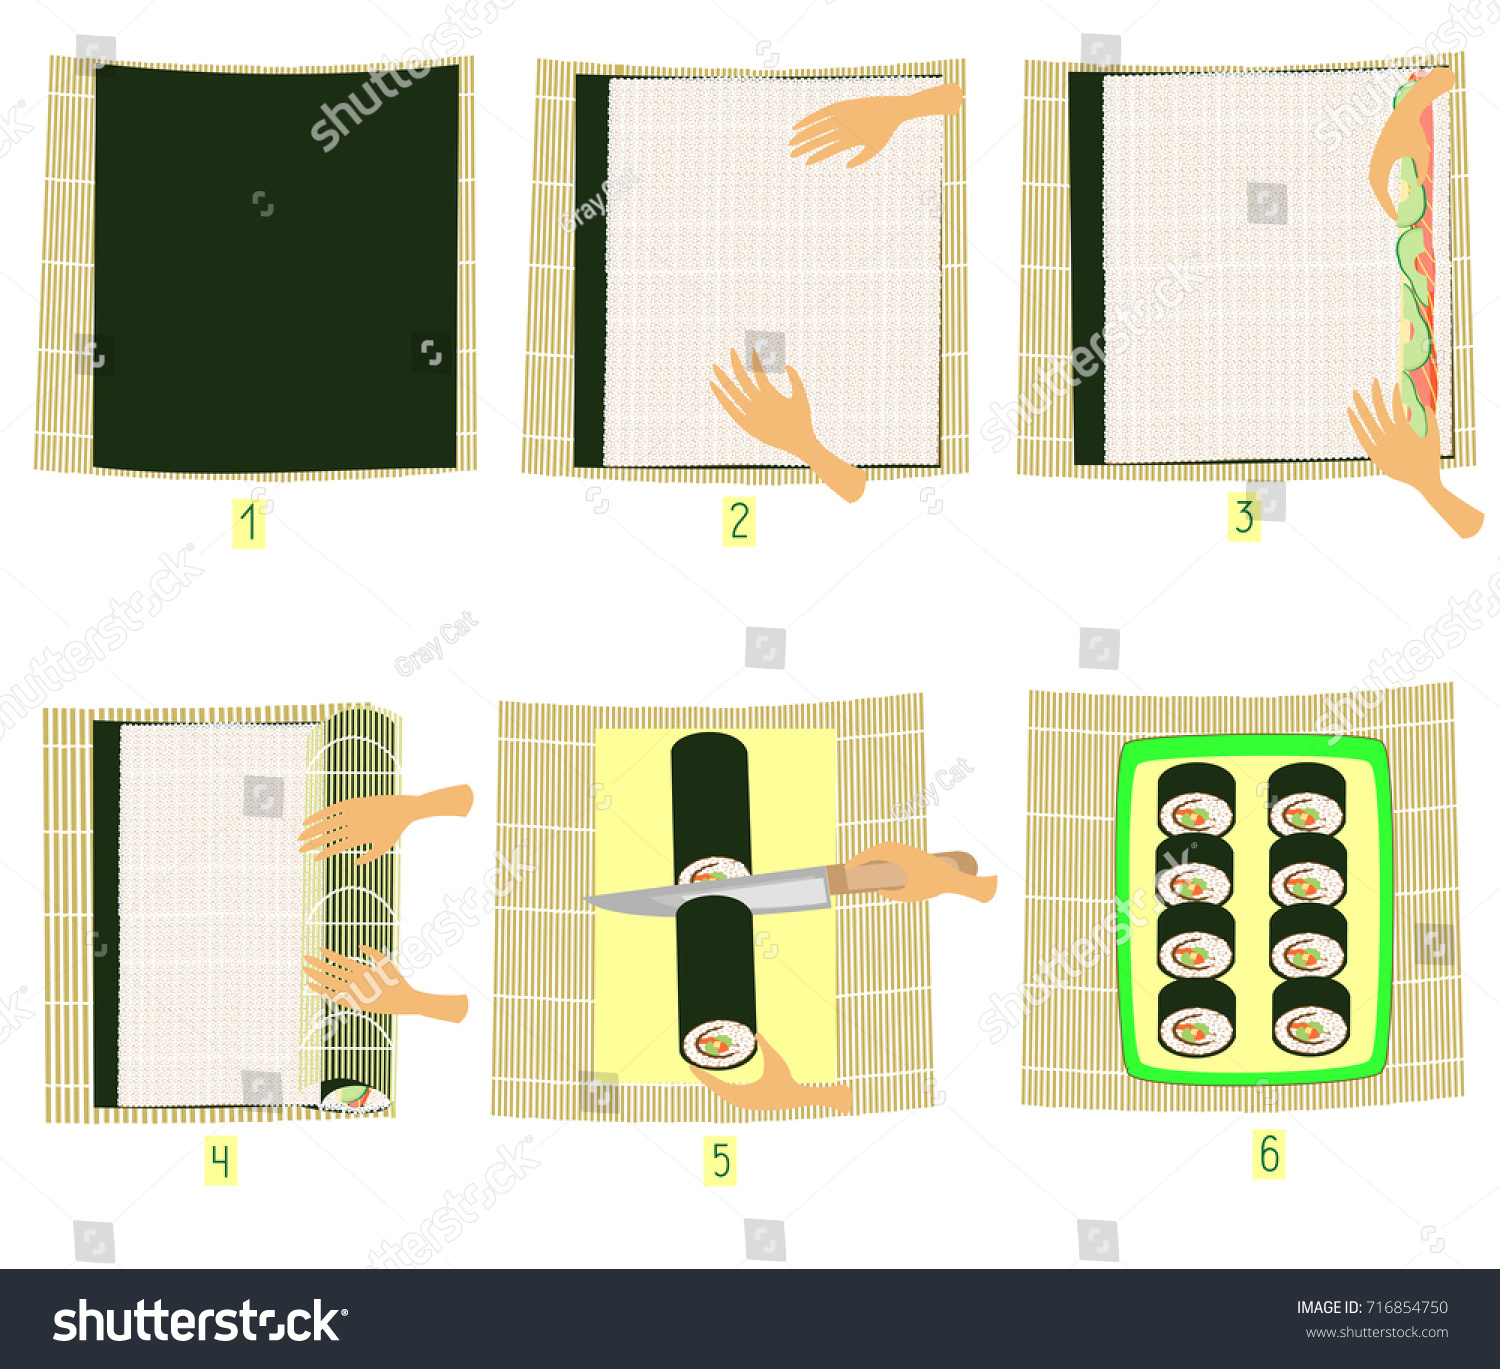 Preparation sushi pictures stepbystep instruction do stock vector hd preparation of sushi in pictures step by step instruction do it yourself solutioingenieria Images